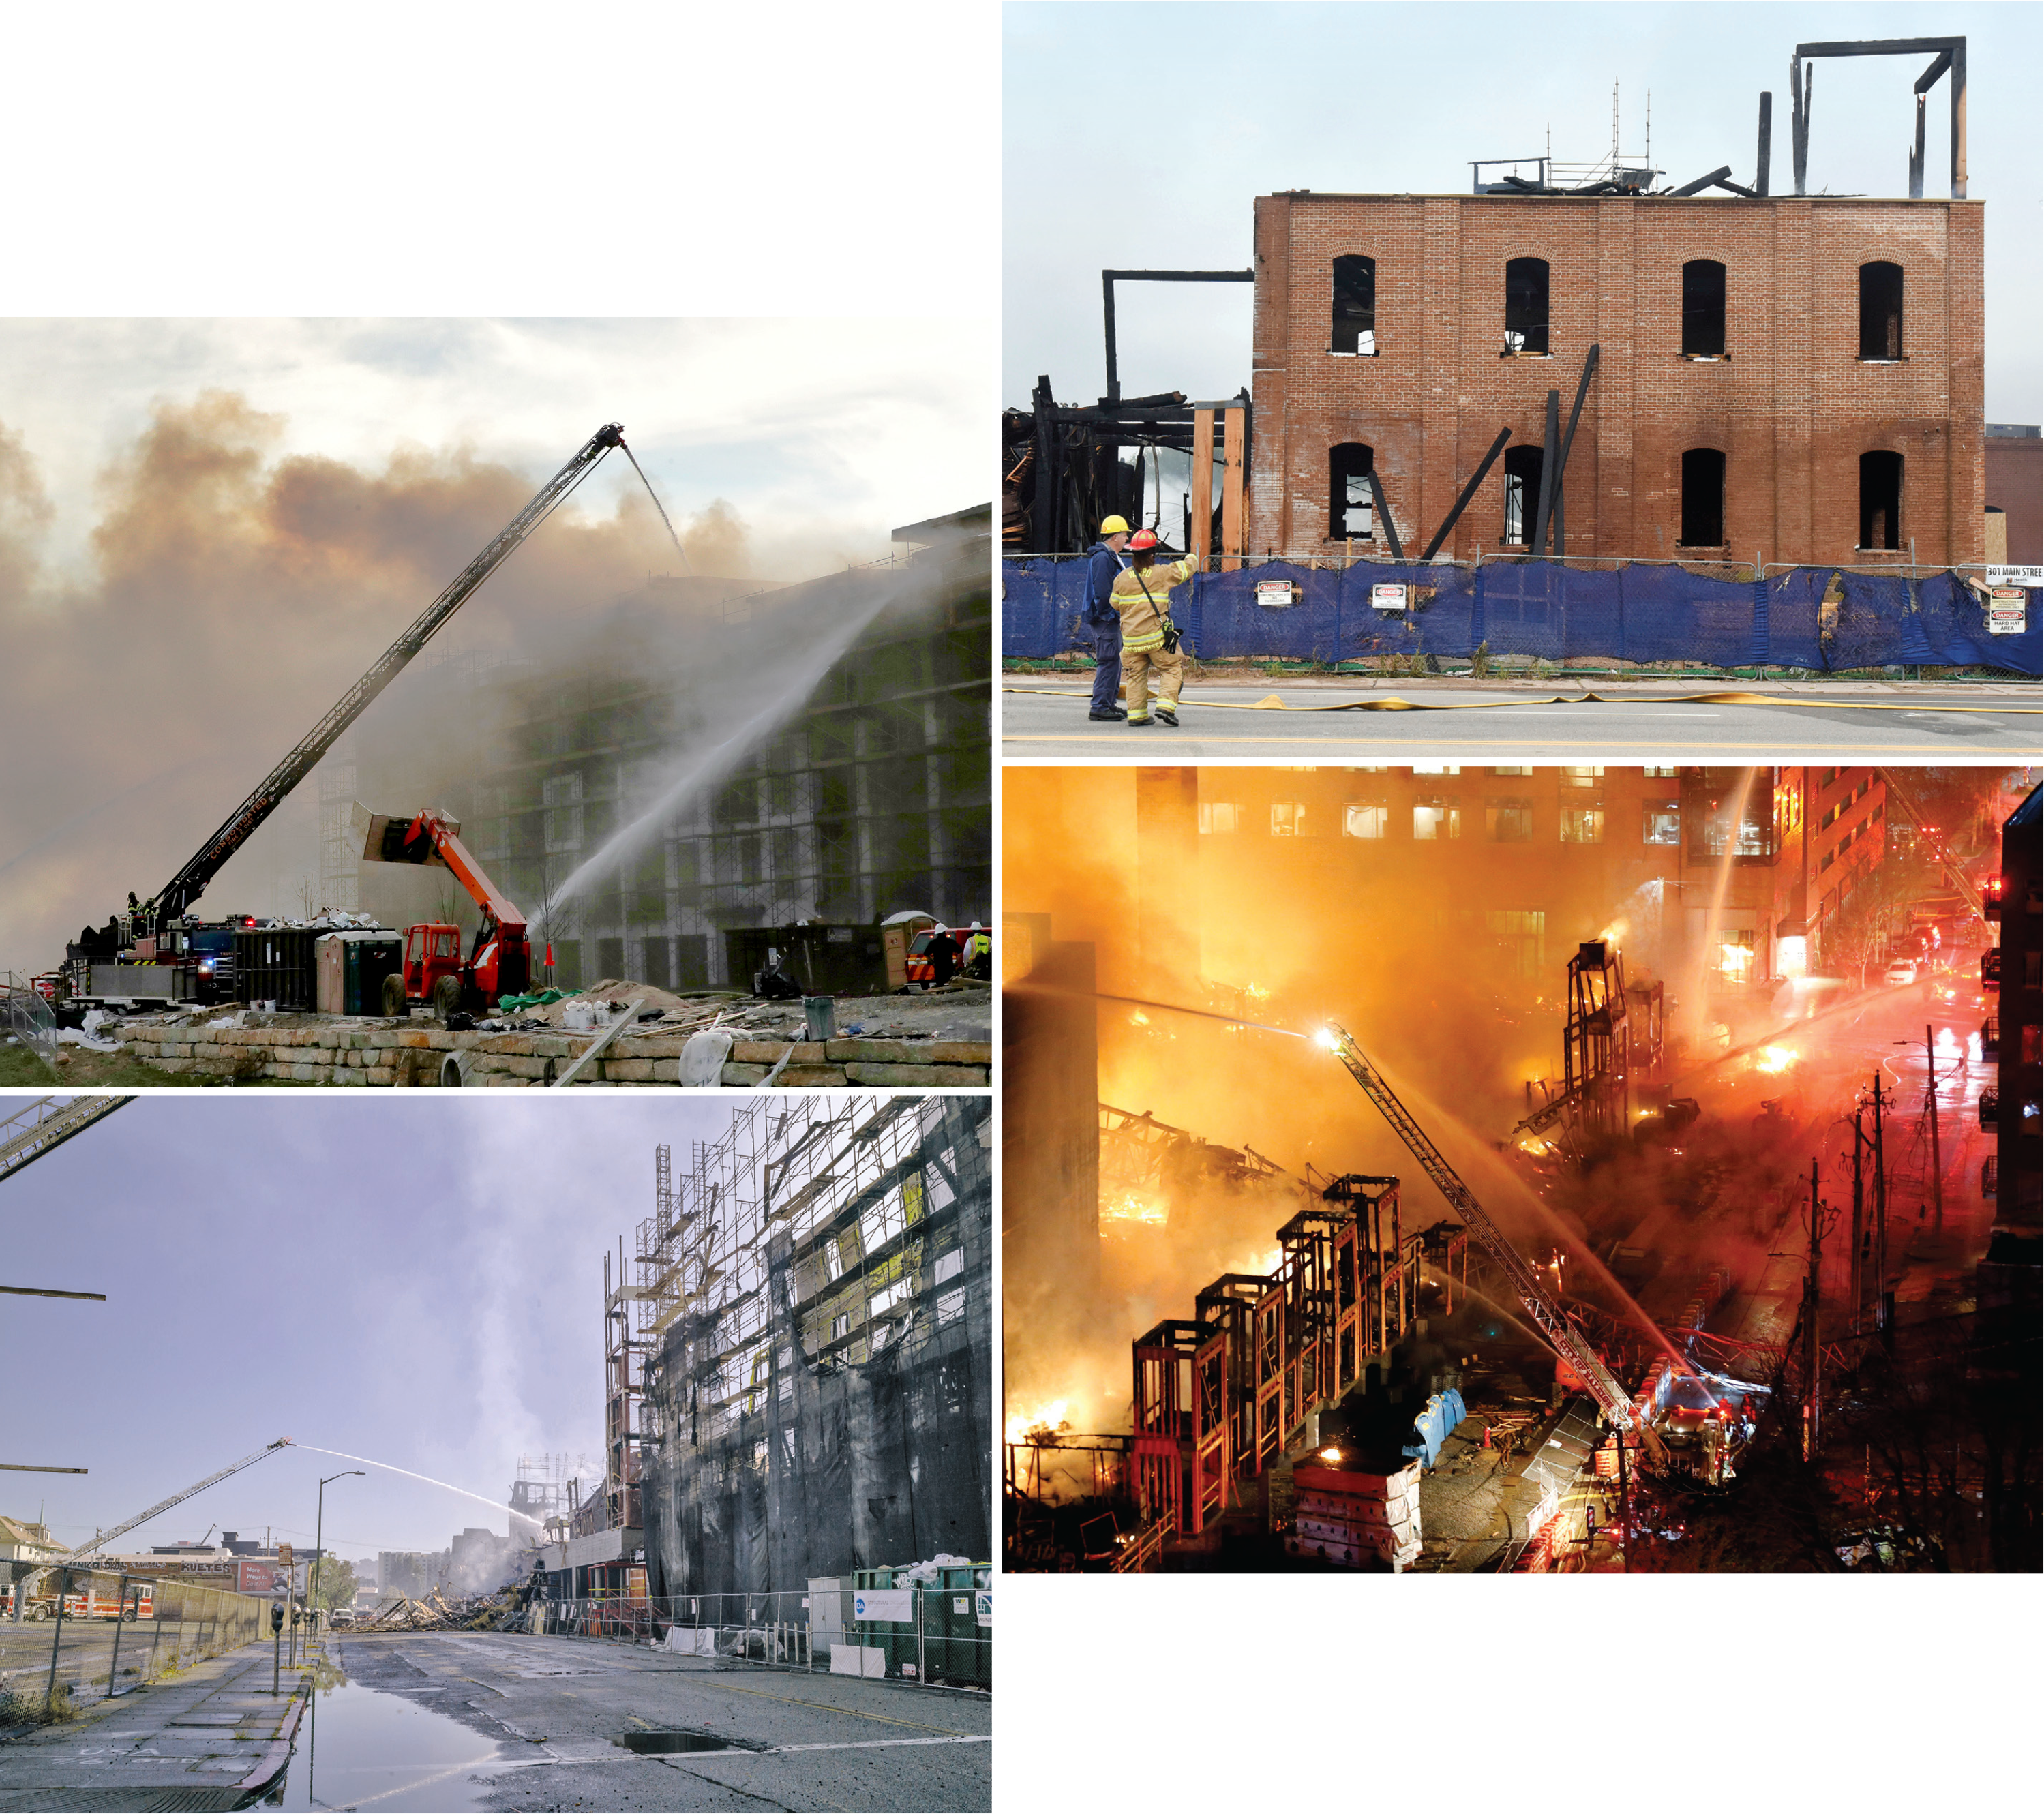 Recent fires involving buildings under construction